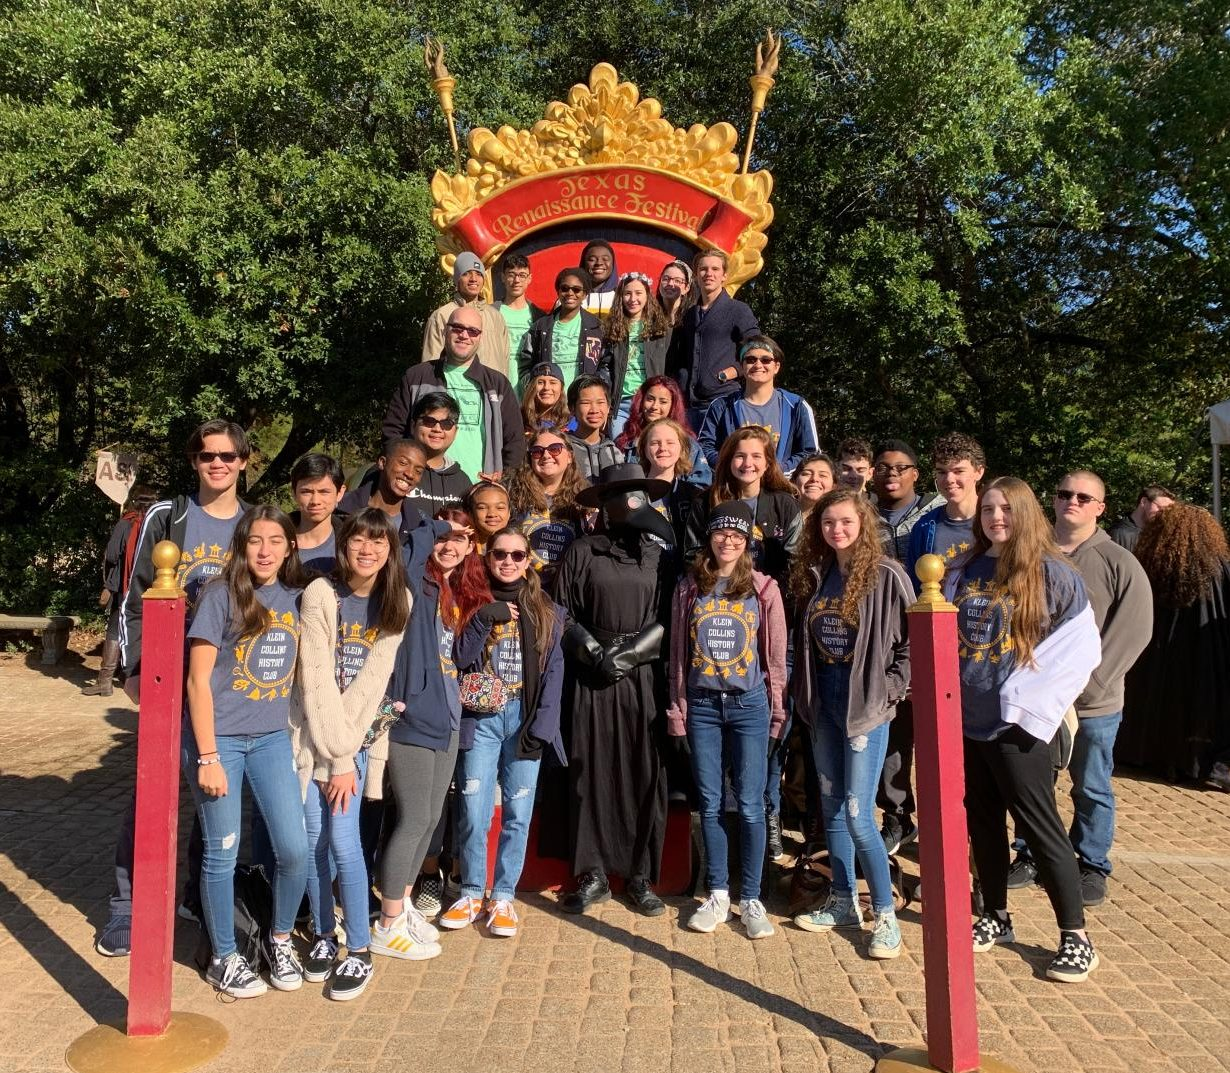 History Club had their annual visit to the Texas Renaissance Festival this past Saturday.